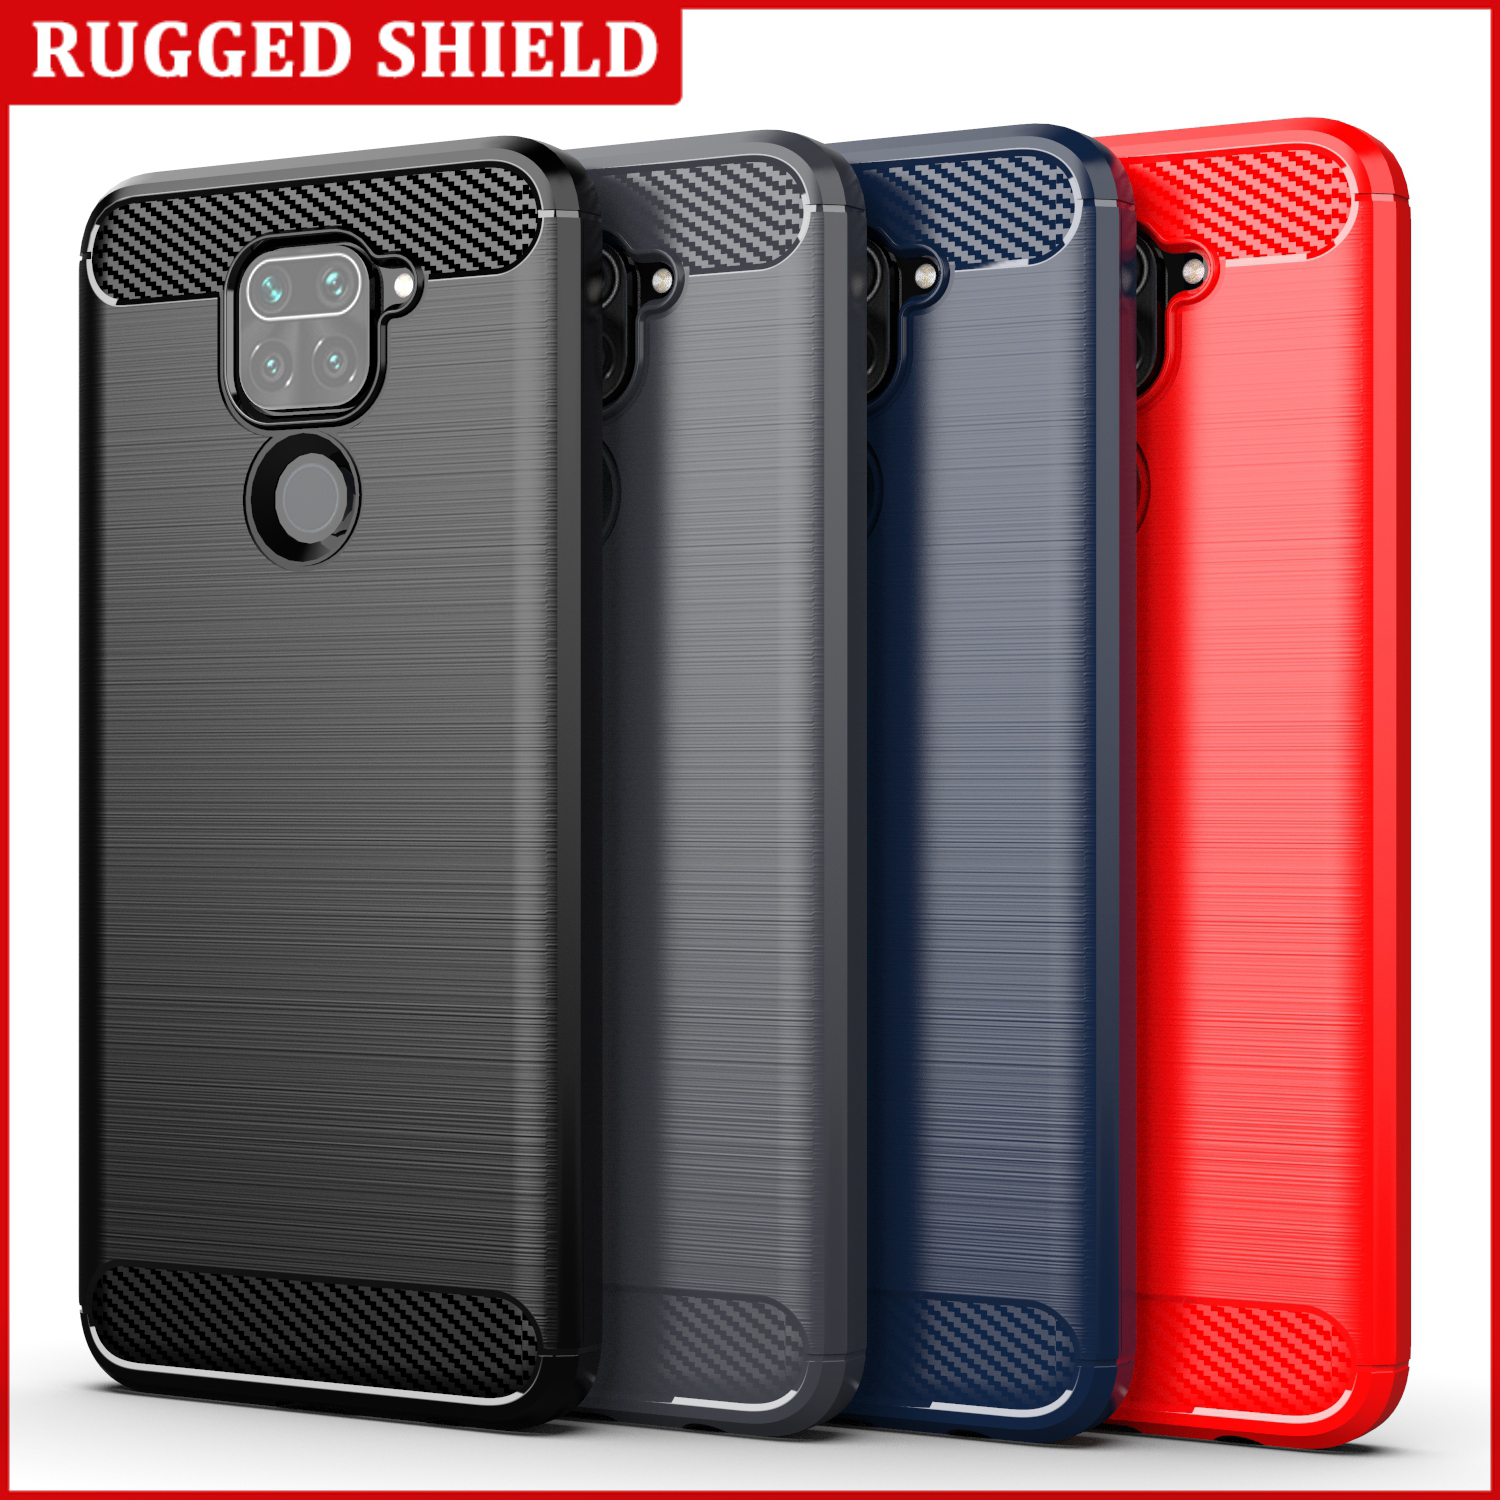 Shockproof Case For Xiaomi Mi Note 9 10 Pro 9 8 SE 9T A2 A3 Lite Mix 2s Redmi Note 9s 8 7 6 K20 K30 Pro 4X 6A 7A 8A 5 Plus Cover image